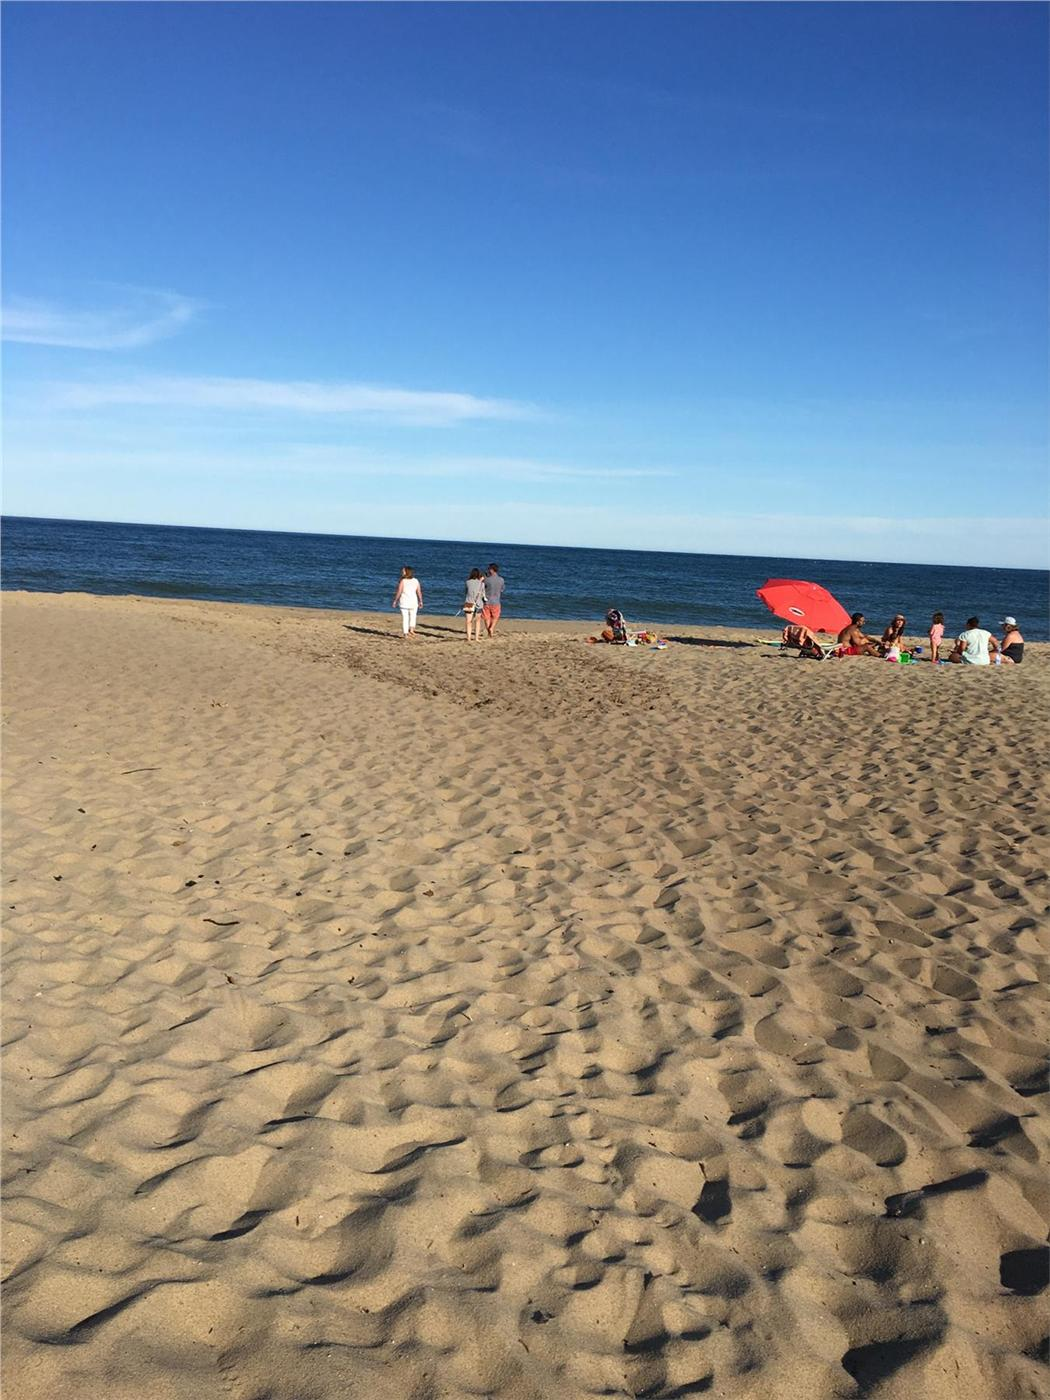 Siasconset Vacation Rental Home In Nantucket Ma 02564 7 Minute Stroll 4 Blocks To Ocean